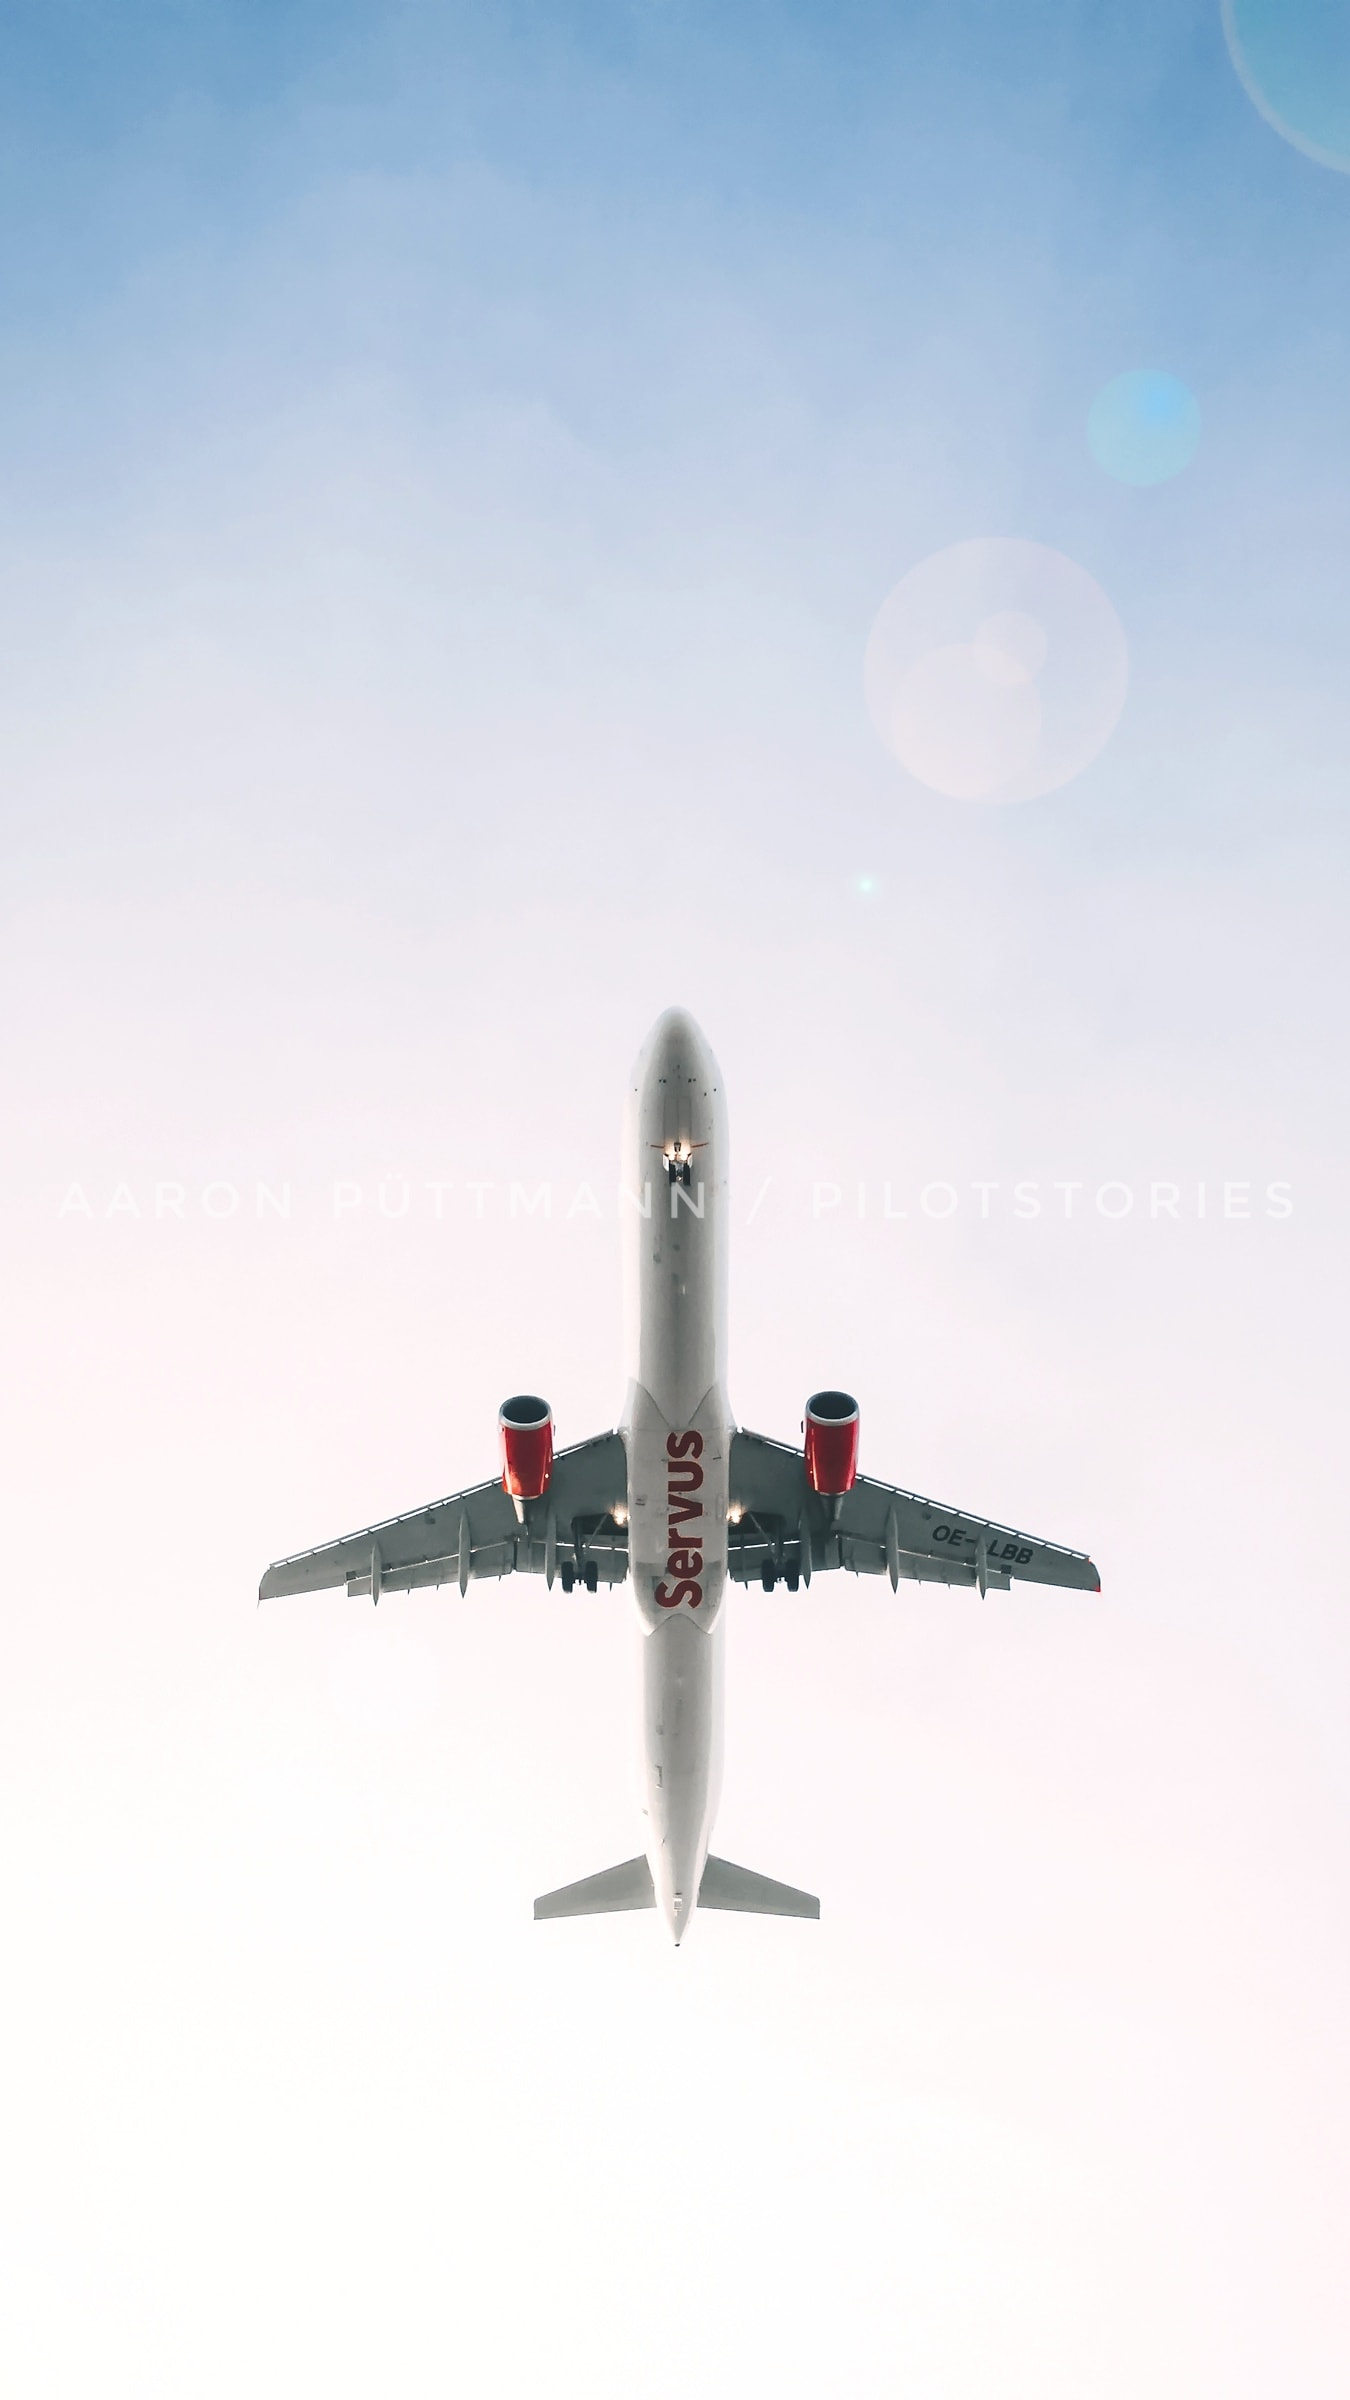 A full list of my Full-HD aircraft wallpapers for your smartphone!